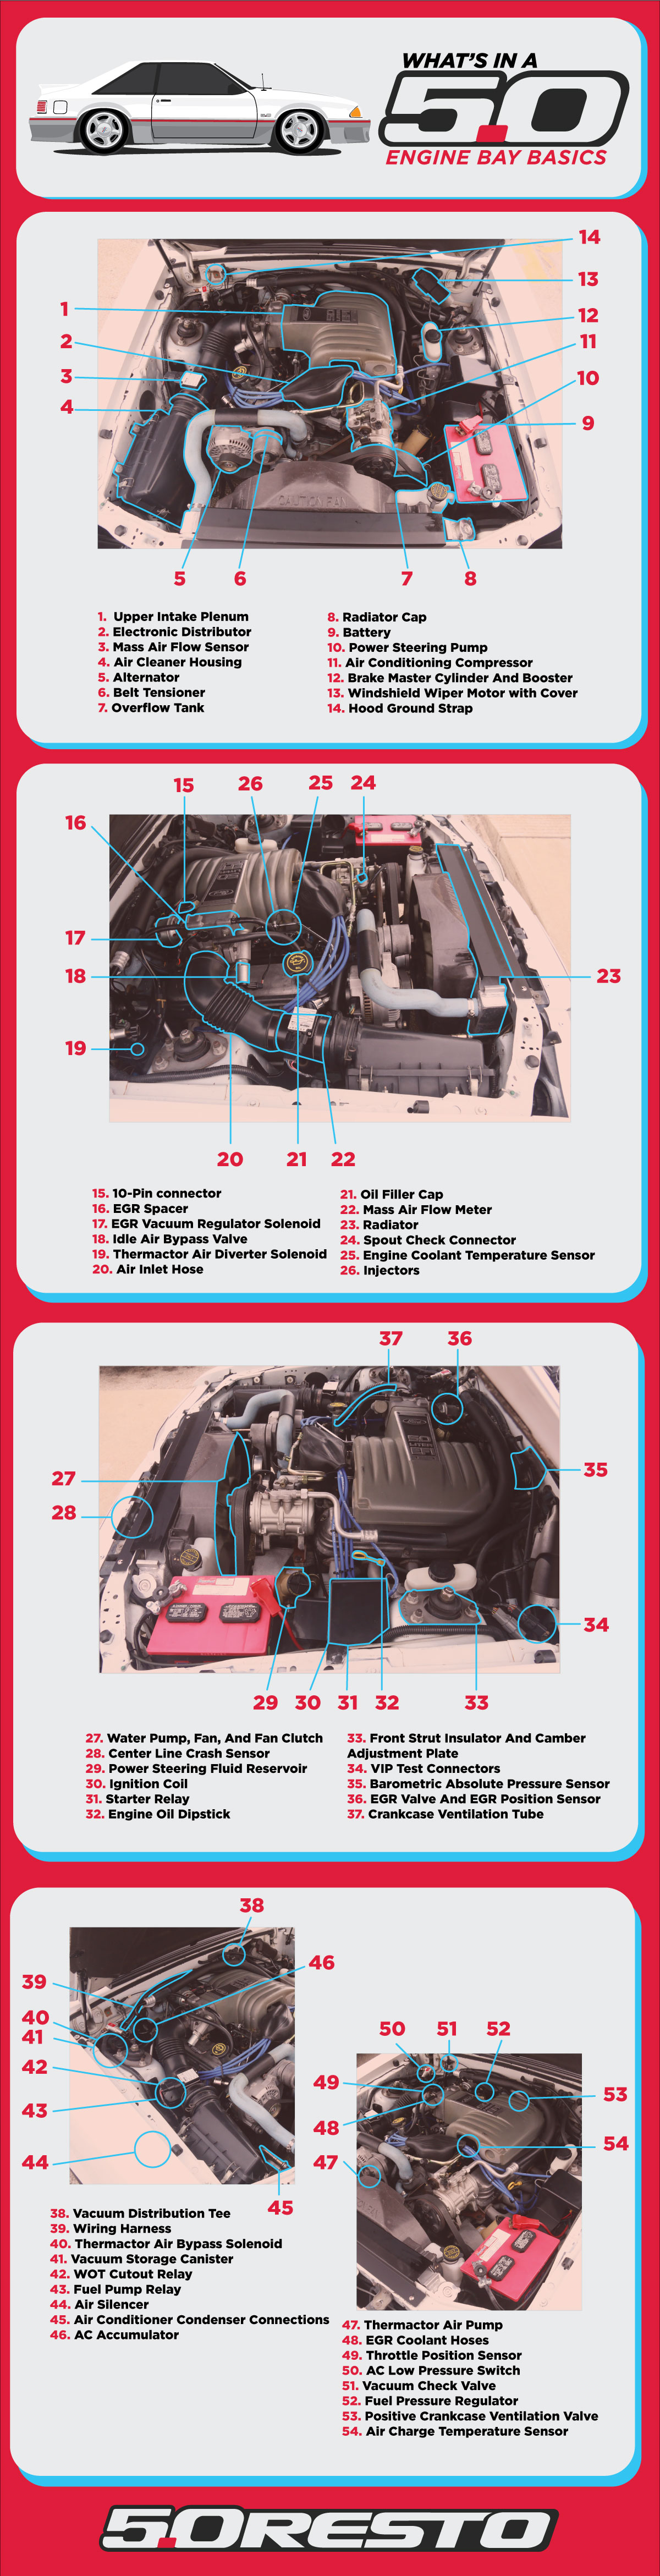 Fox Body Engine Bay Diagram  - Fox Body Engine Bay Diagram